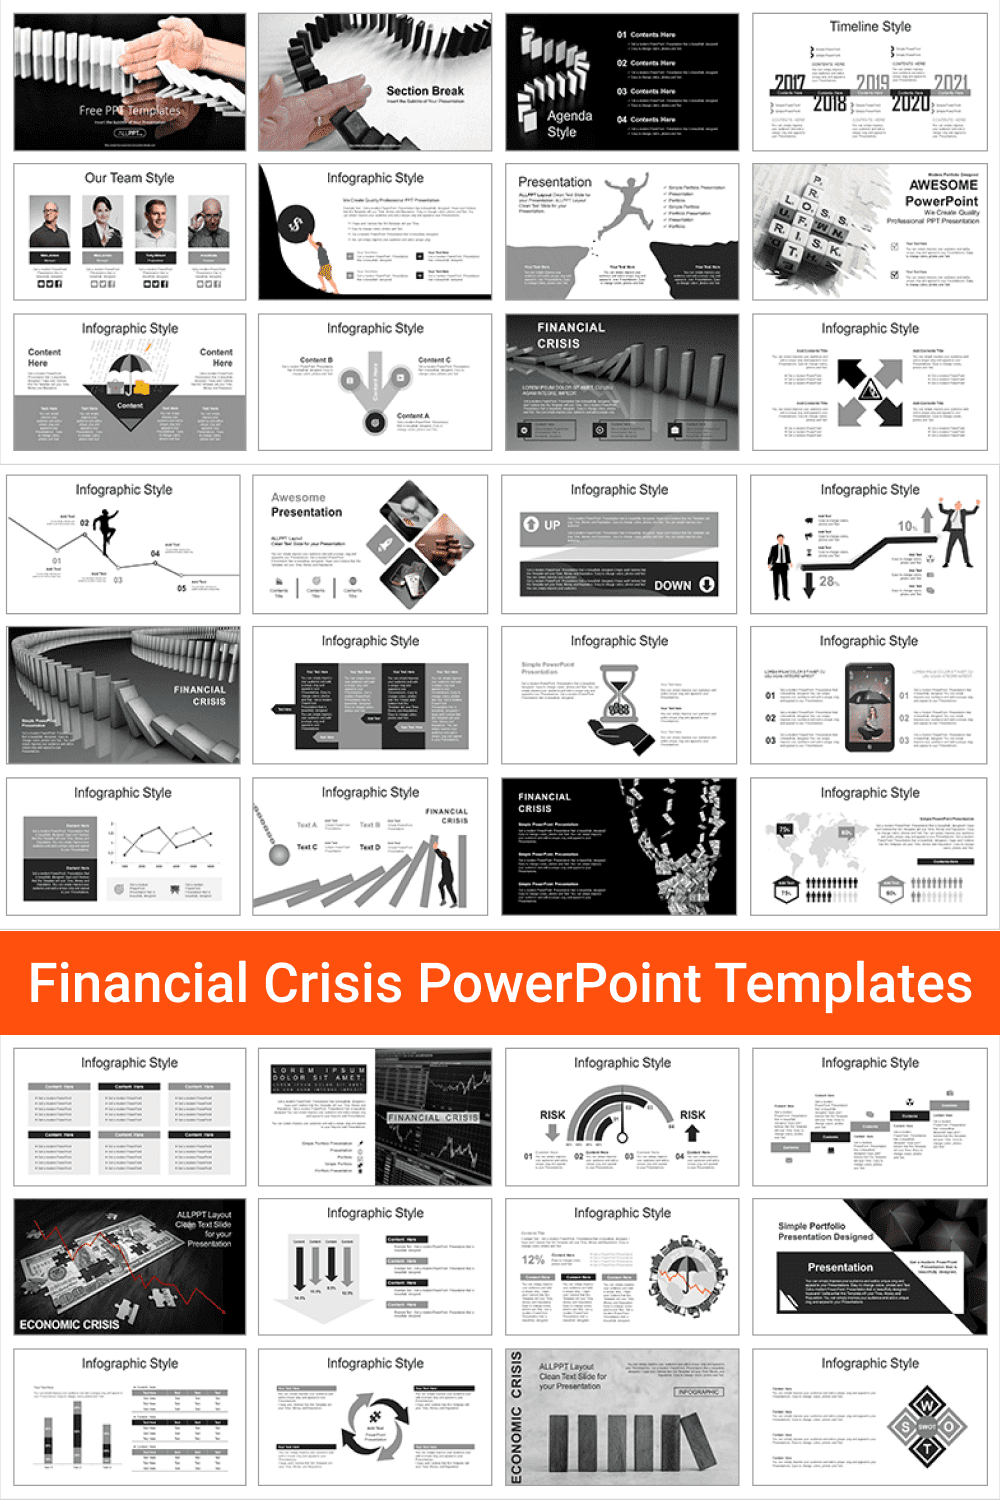 Financial Crisis PowerPoint Templates.